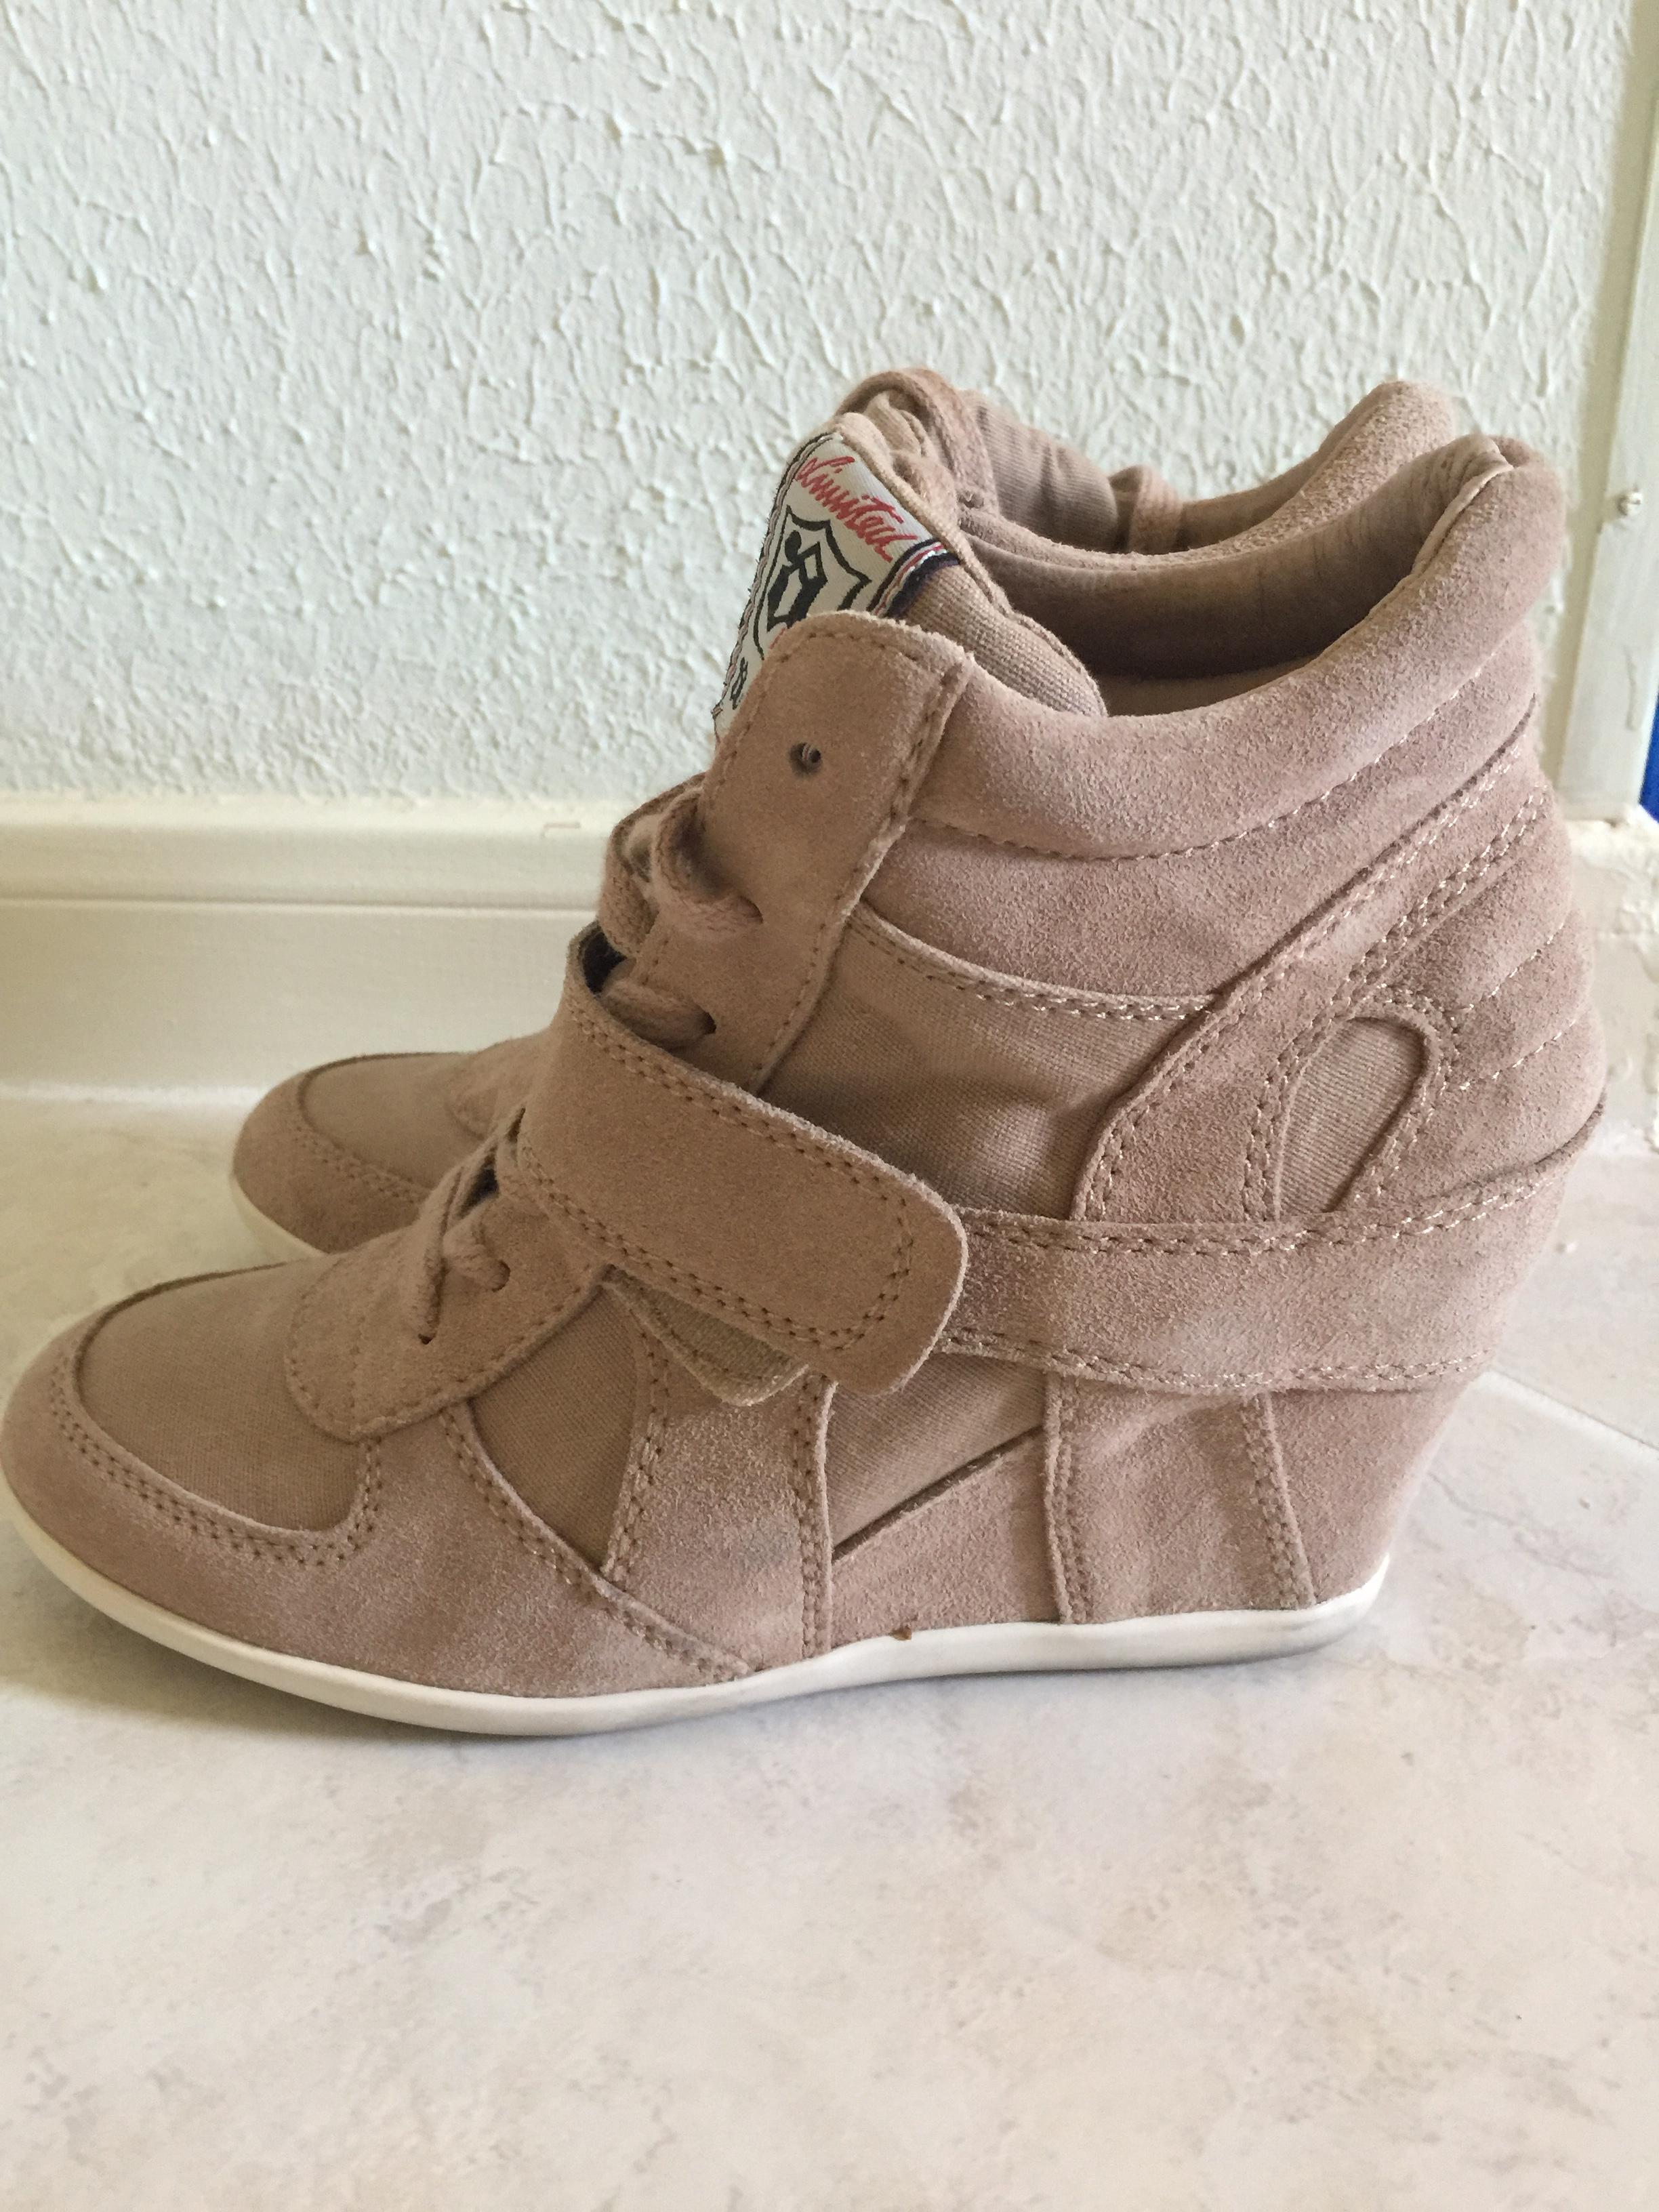 ash bowie wedge sneakers cocco beige athletic shoes on